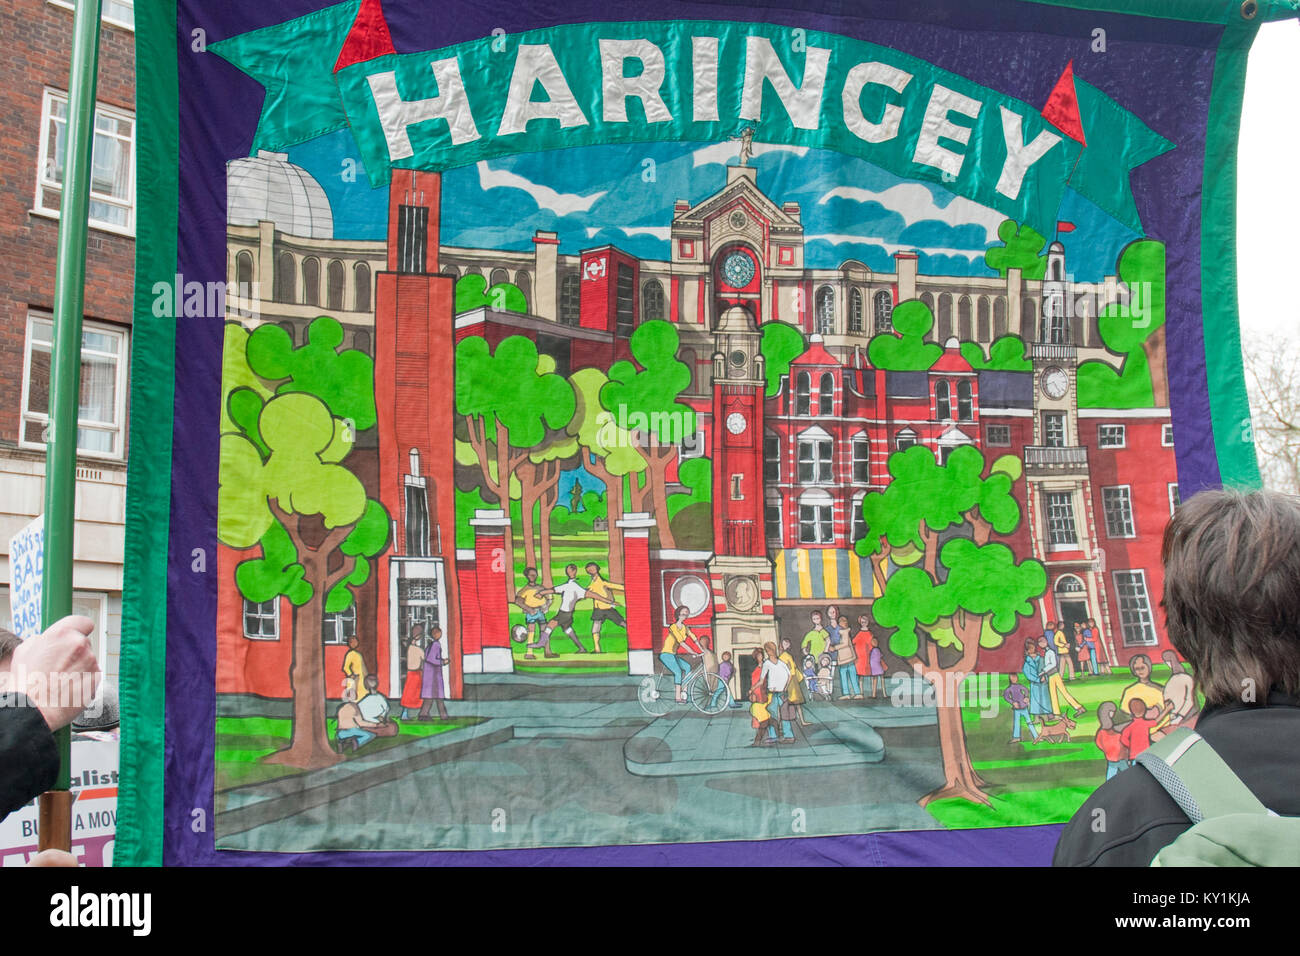 Close up of colourful embroidered trade union banner from Haringey showing iconic landmarks in Haringey. Unison - Stock Image